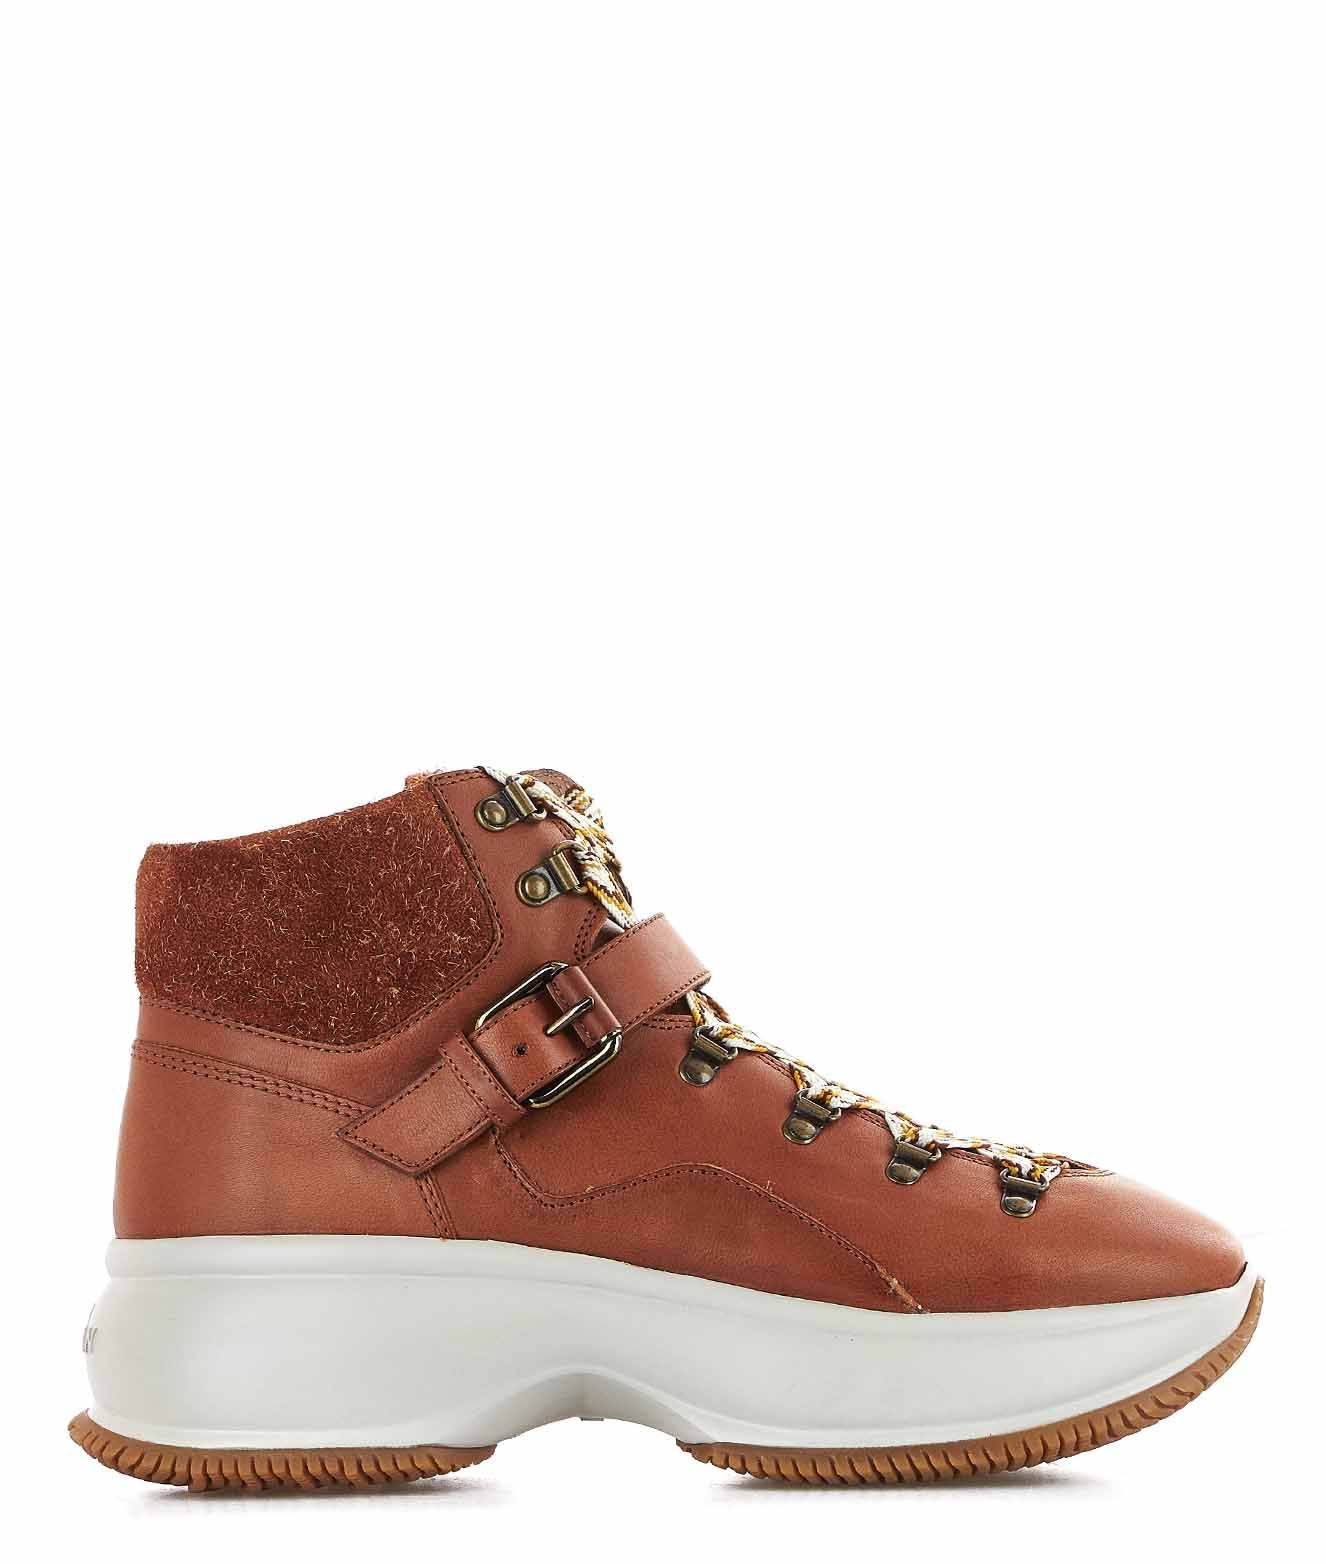 HOGAN WOMEN'S HXW4350CA30LQ9S003 BROWN LEATHER ANKLE BOOTS